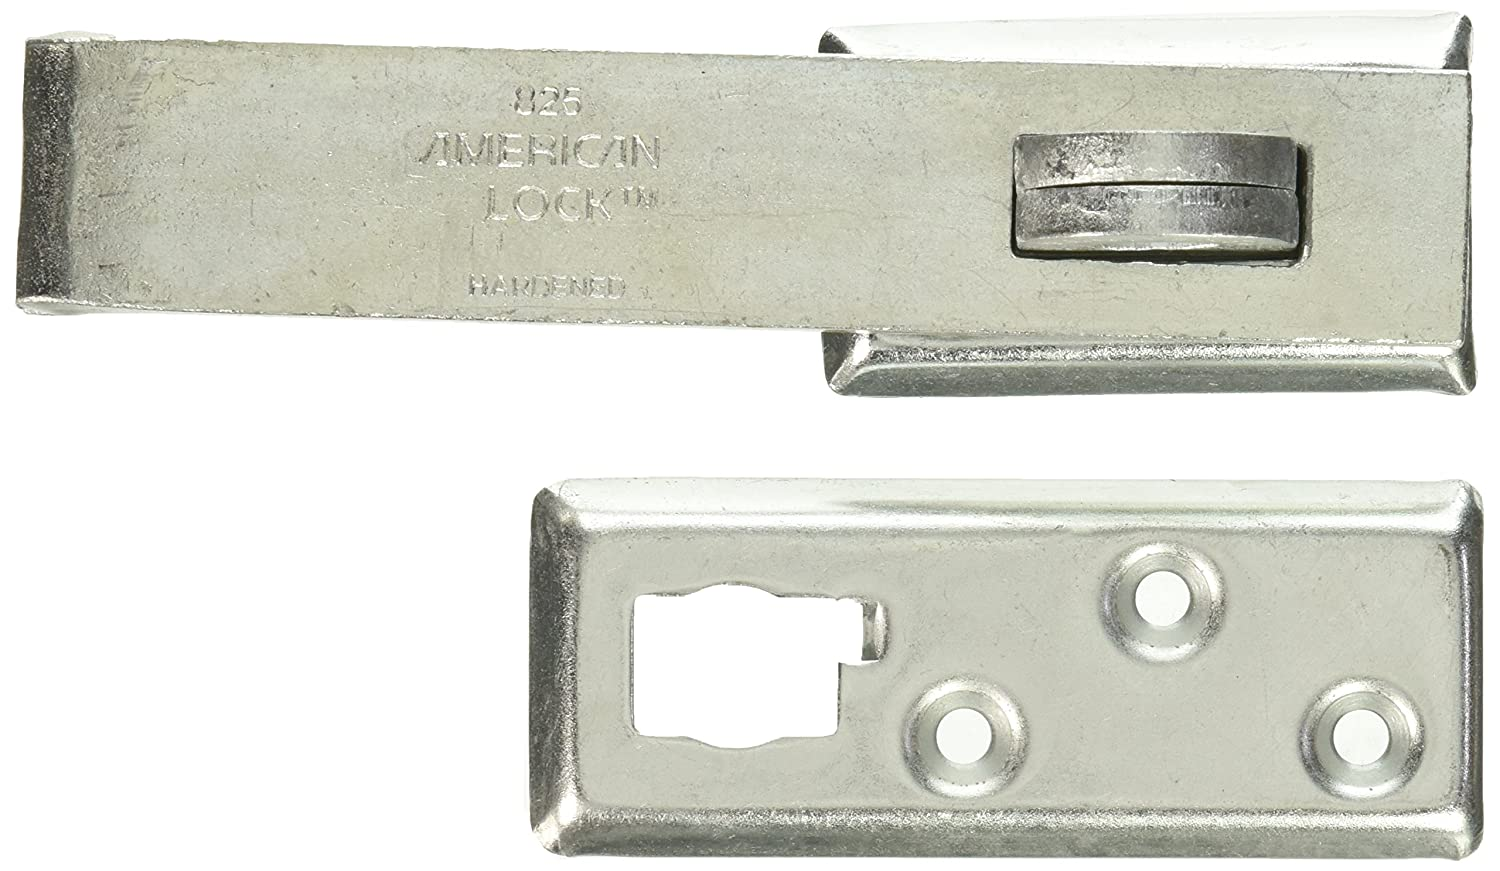 MASTER LOCK A825D American Heavy Duty Straight Bar Locking Hasp 7 16 in Shackle 7 1 4 in L 7 1 2